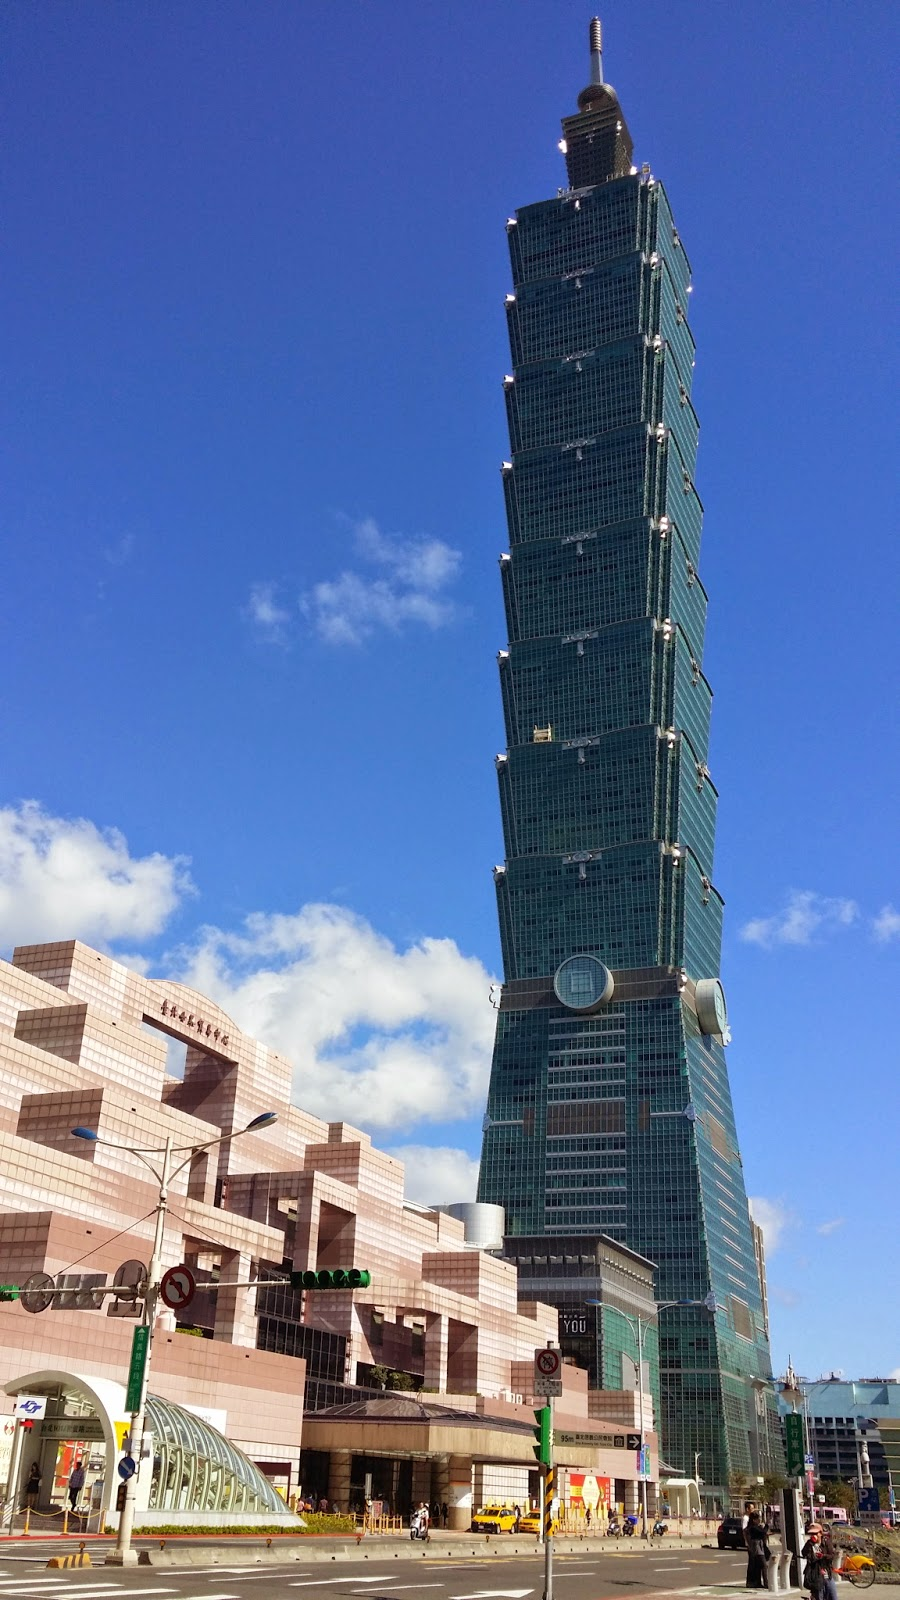 101 Best Ongles Images On Pinterest: Top Of The World: Taipei 101